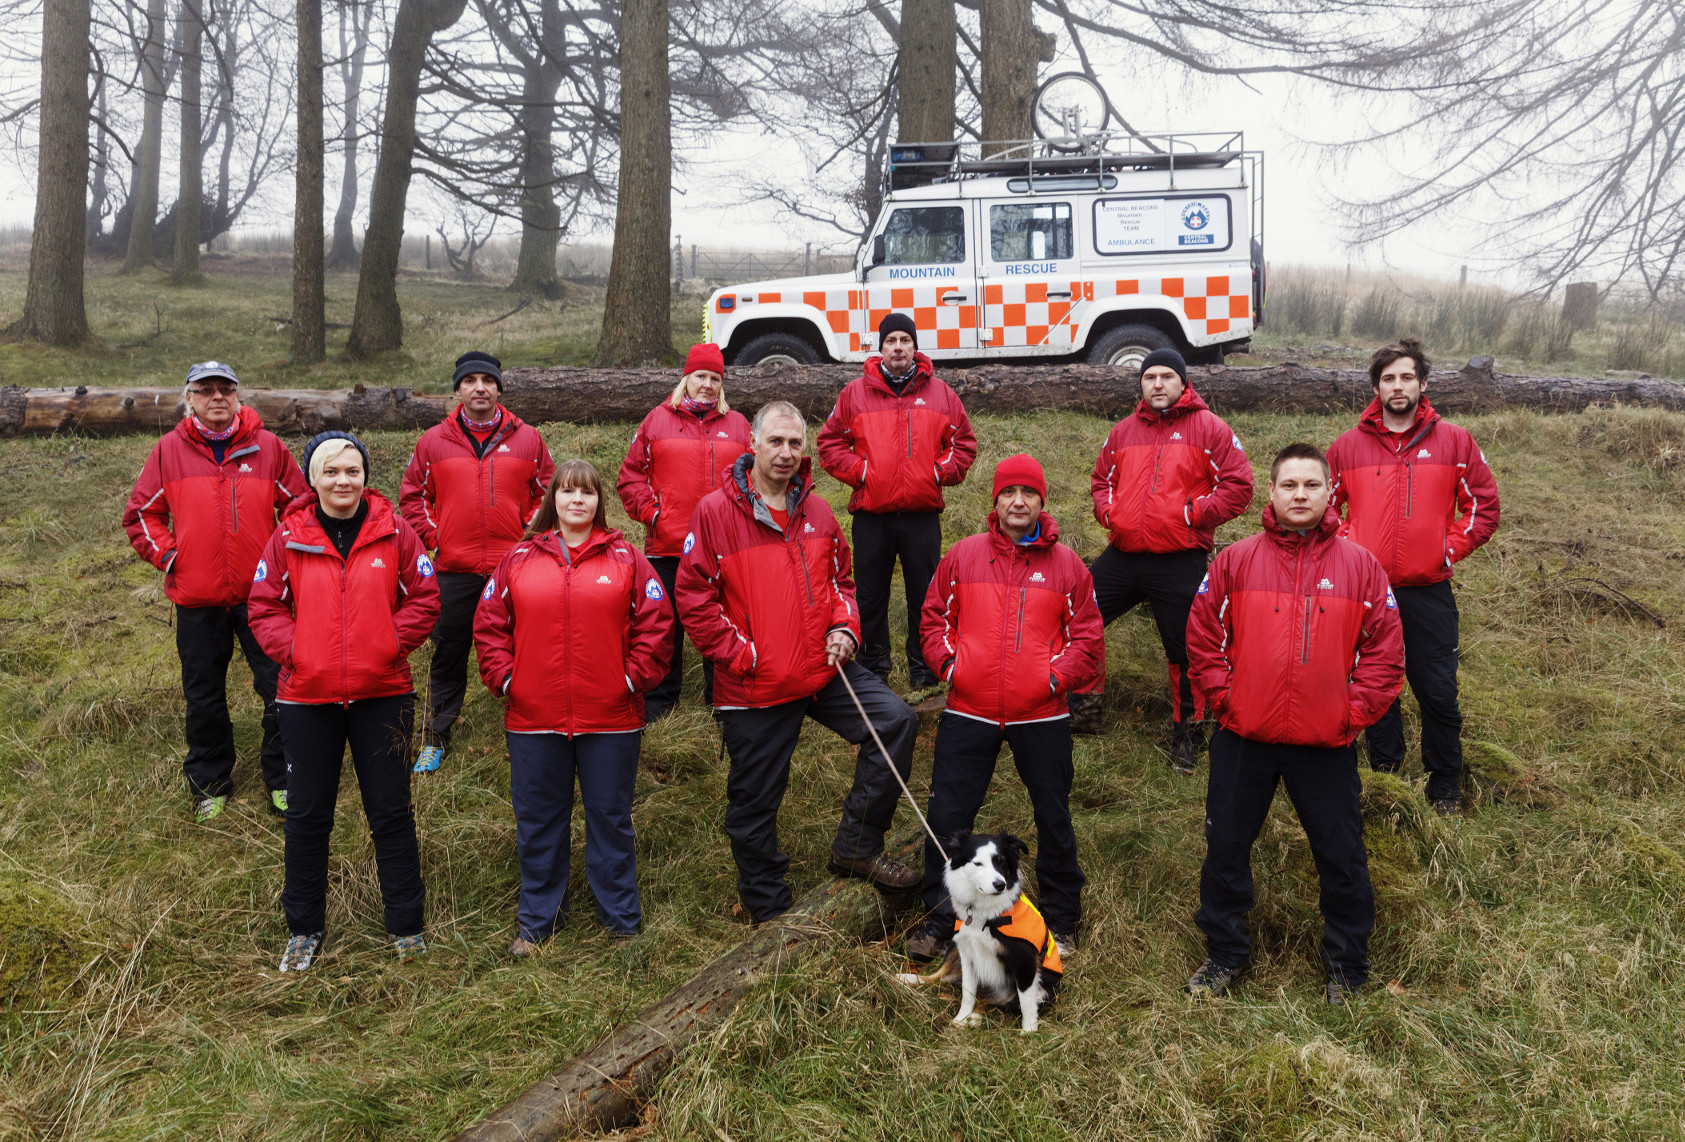 BBC One, Oneness, Mountain Rescue, Brecon Beacons, Photographer: Martin Parr